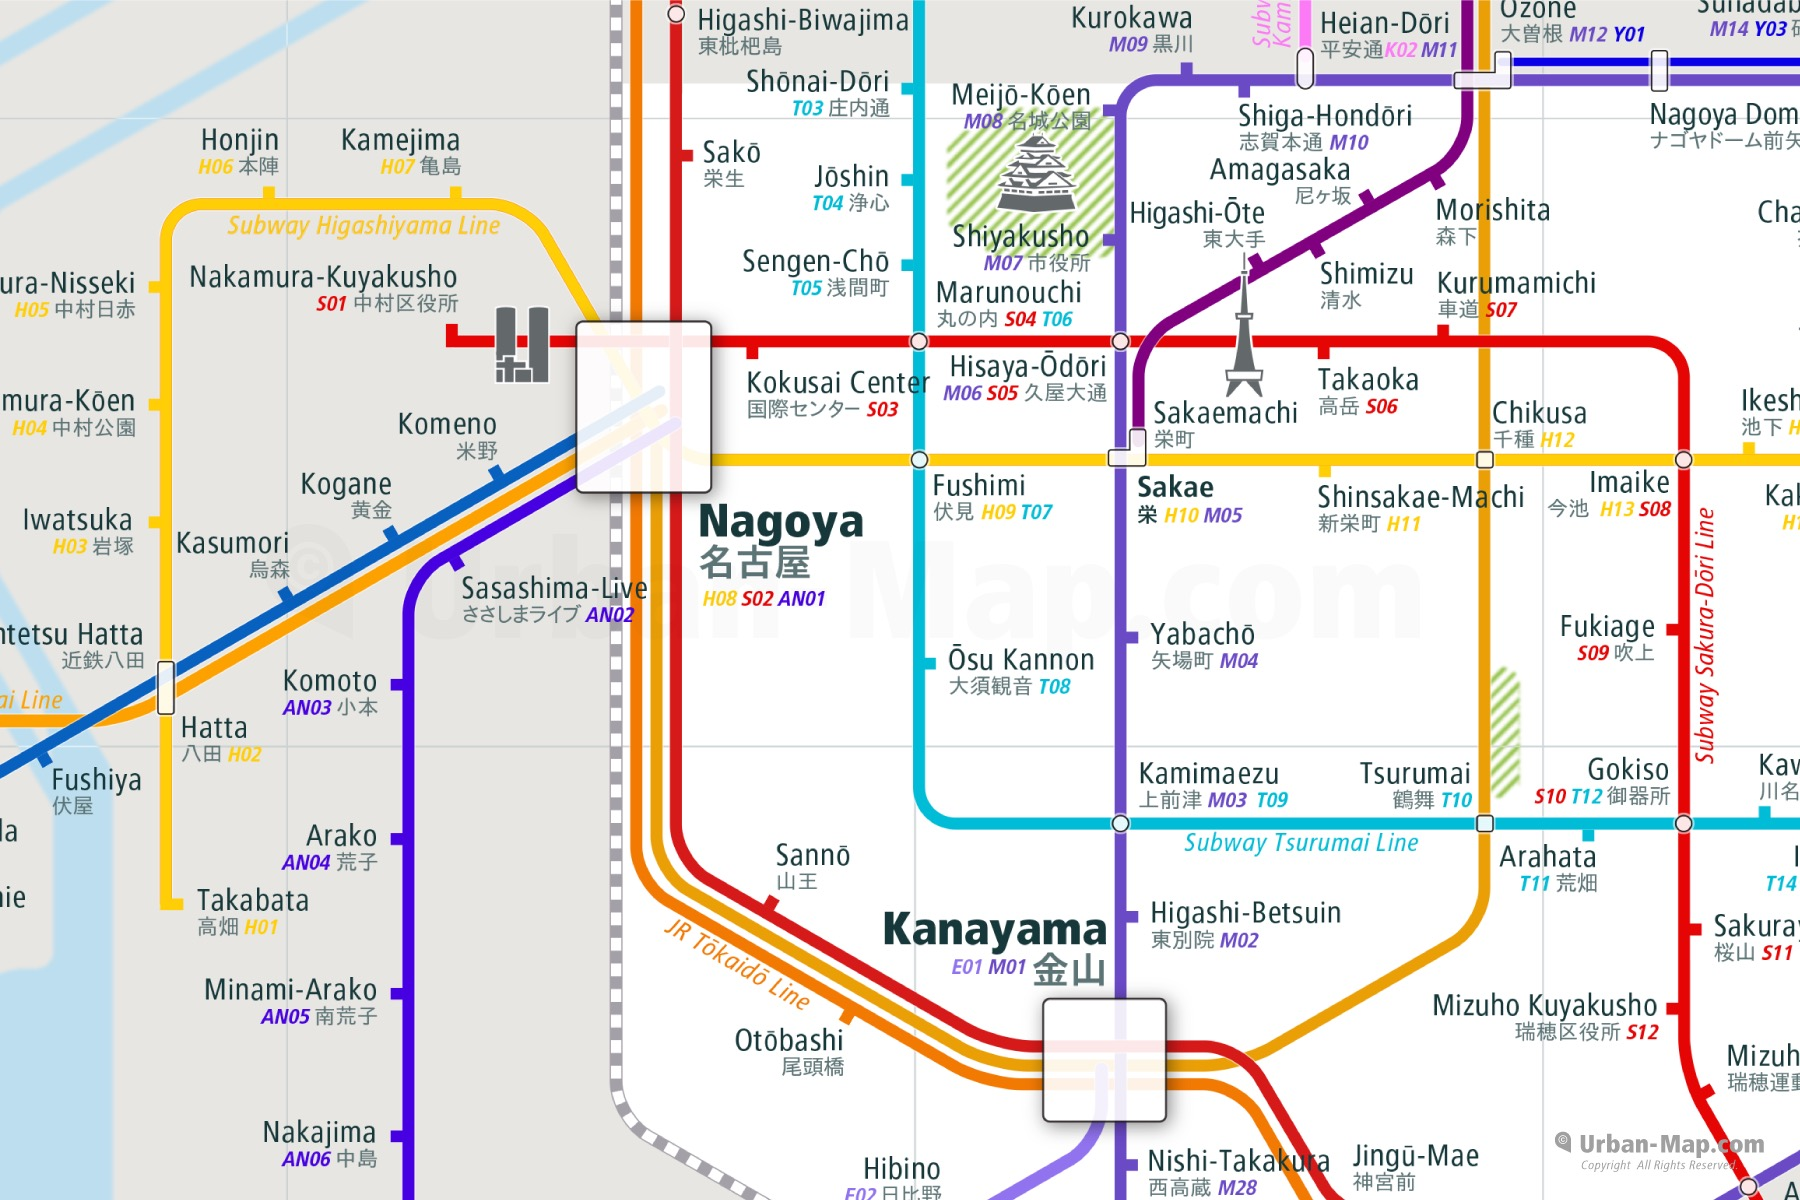 Nagoya City Rail Map shows the train and public transportation routes of